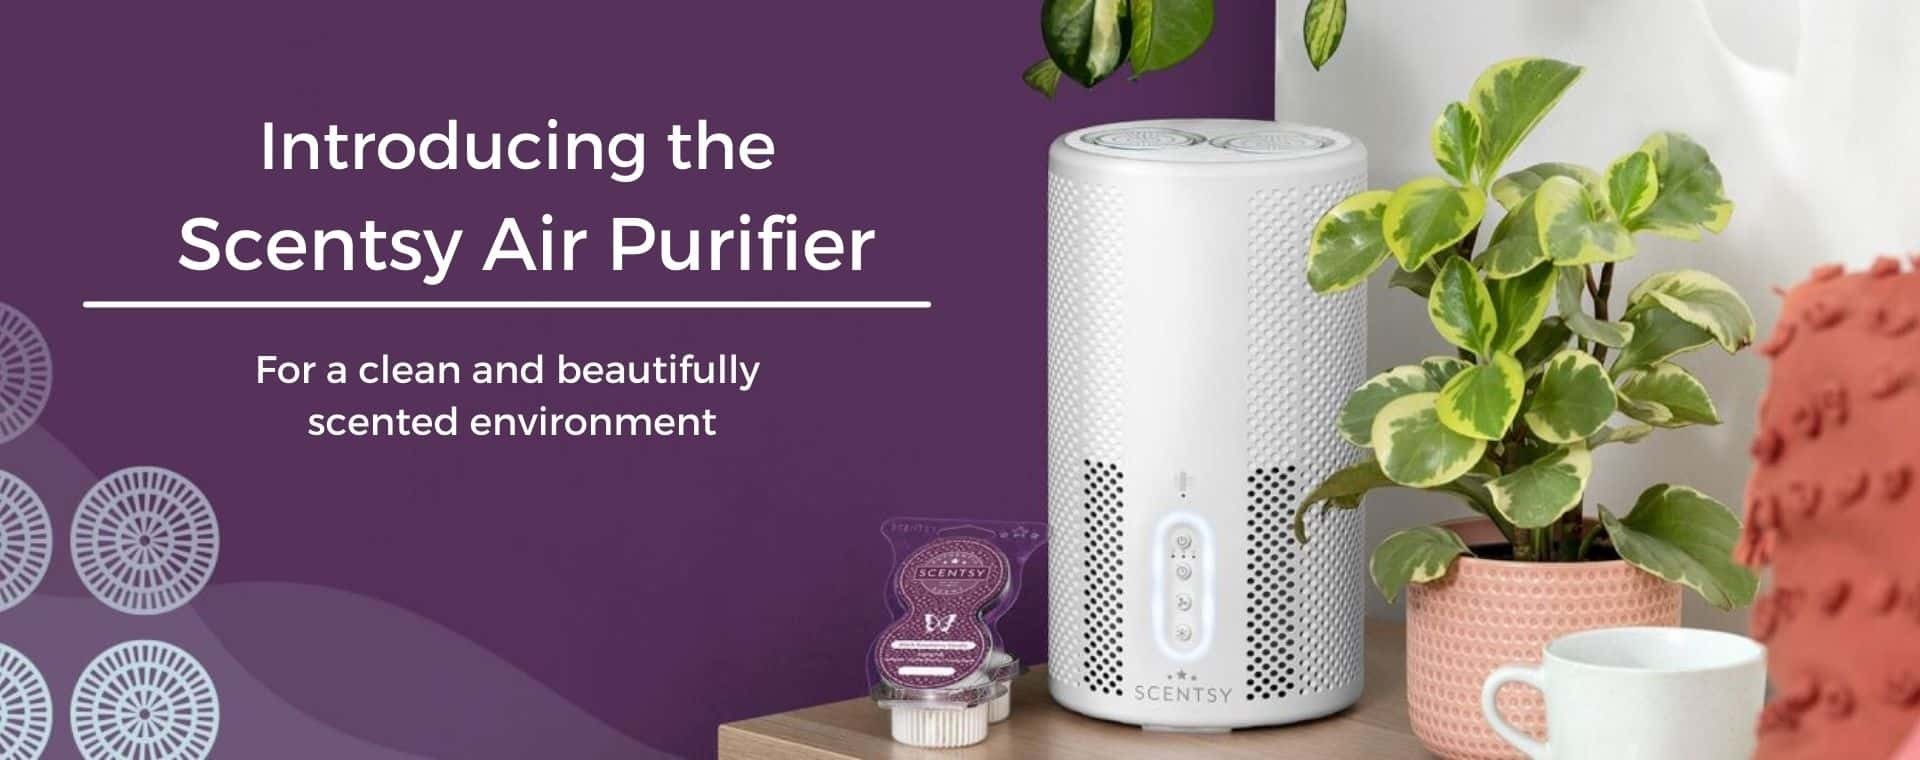 Introducing the Scentsy Air Purifier 1